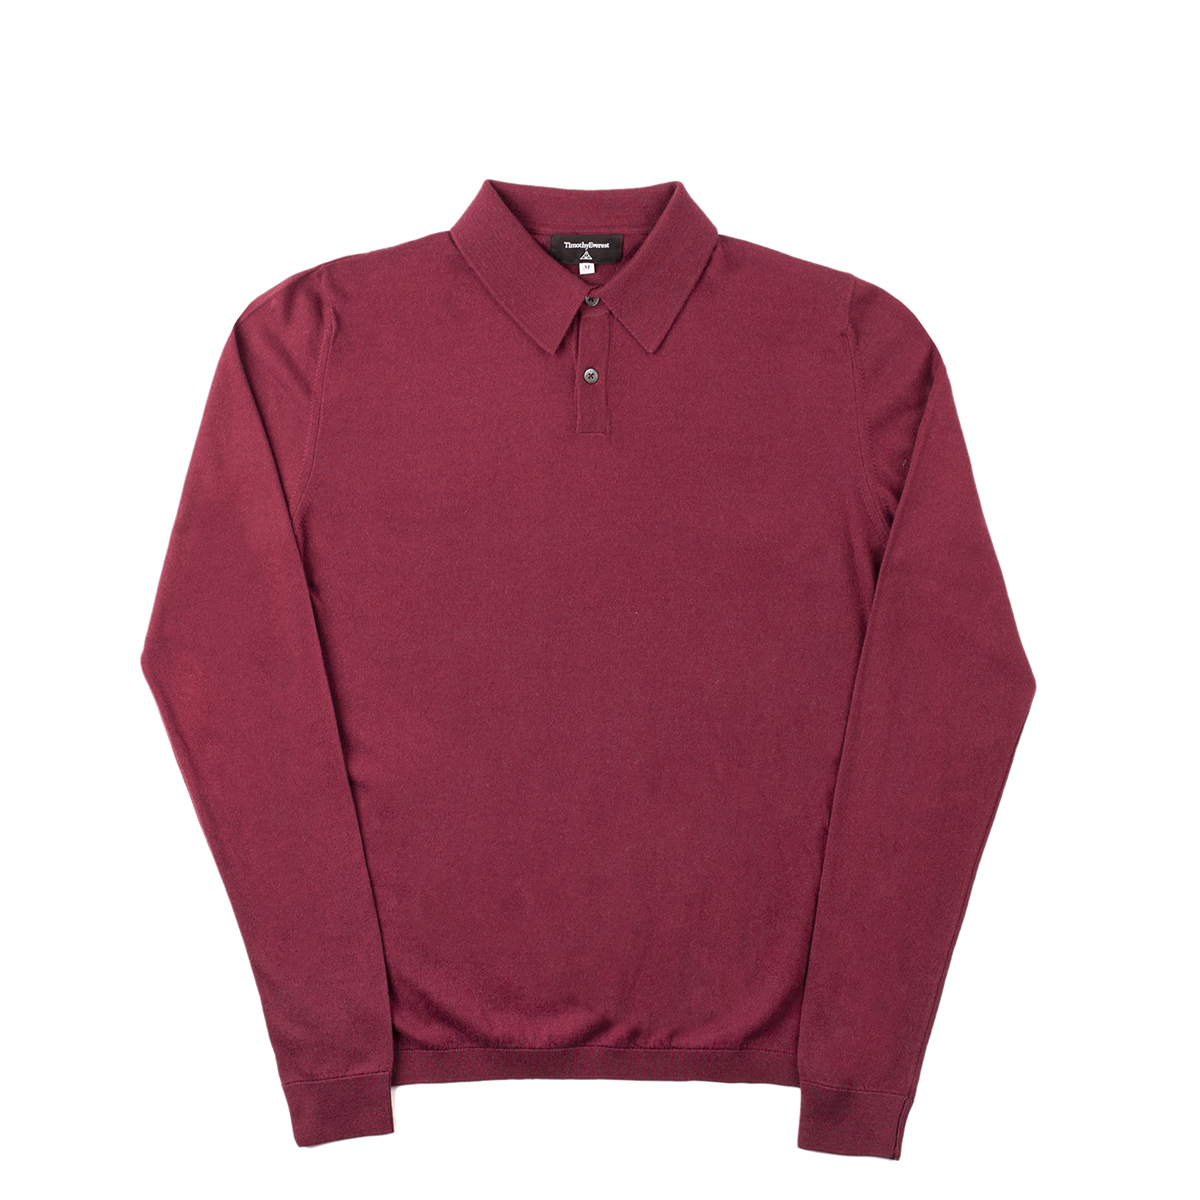 Timothy Everest Burgundy Lightweight Cotton/Cashmere Long Sleeve Polo